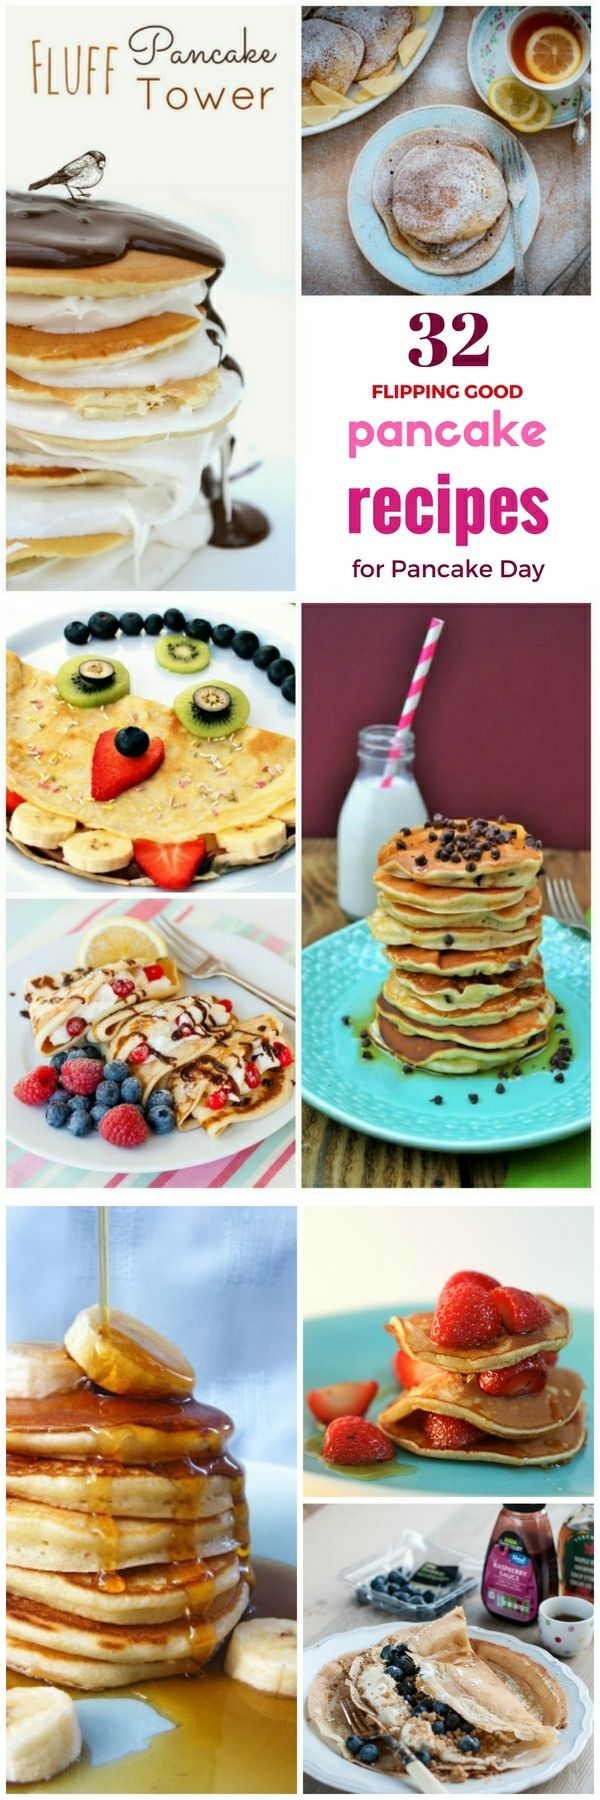 Flippin' heck! It's nearly pancake day! Did you see what I did there? Pancake Day, or to give it it's official name Shrove Tuesday, falls the day before lent and 47 days before Easter Sunday. It's a time to use up all the luxury foods before Lent begins.